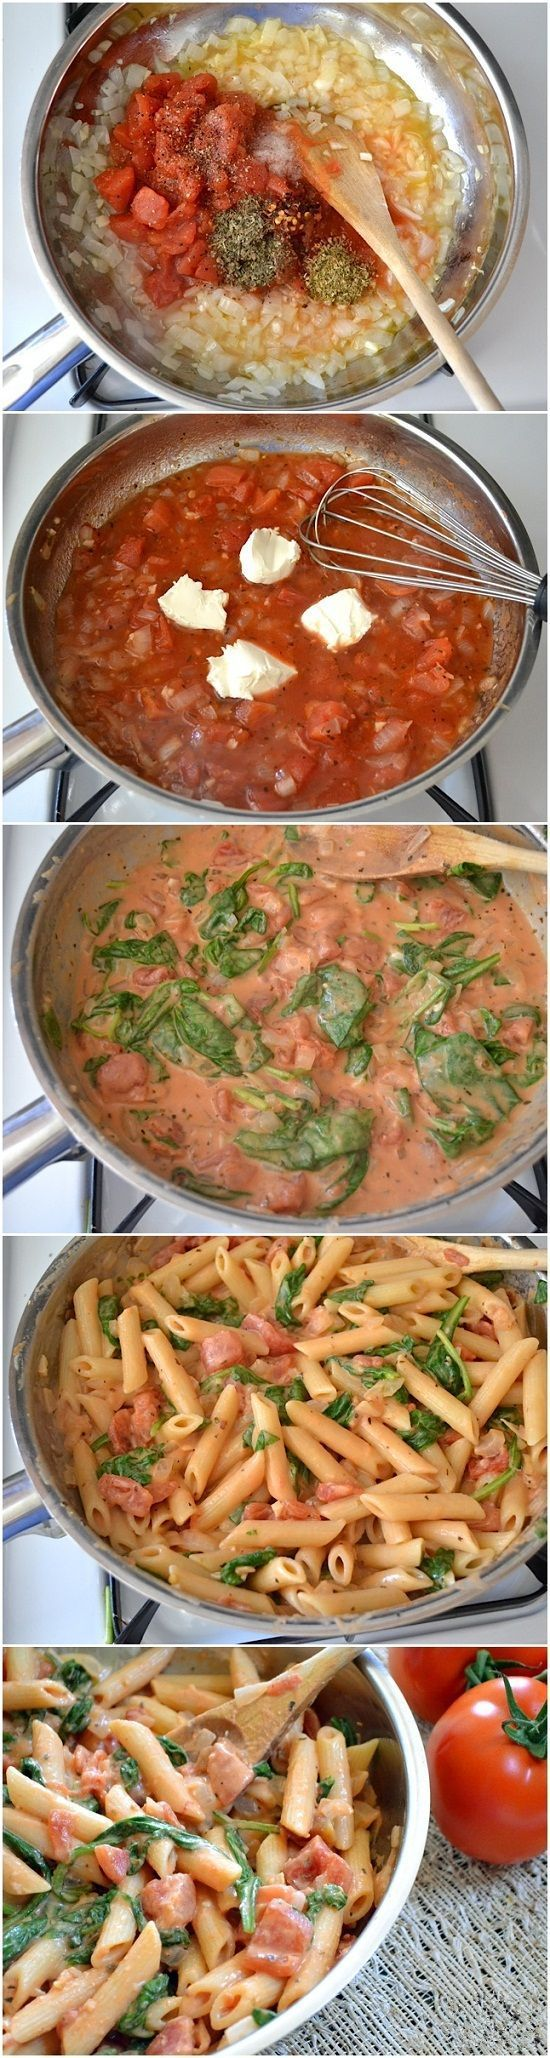 Creamy Tomato  Spinach Pasta. Quick skillet pasta dishes like this Creamy Tomato  Spinach Pasta are perfect for such an occasion. #cheapeats #pasta